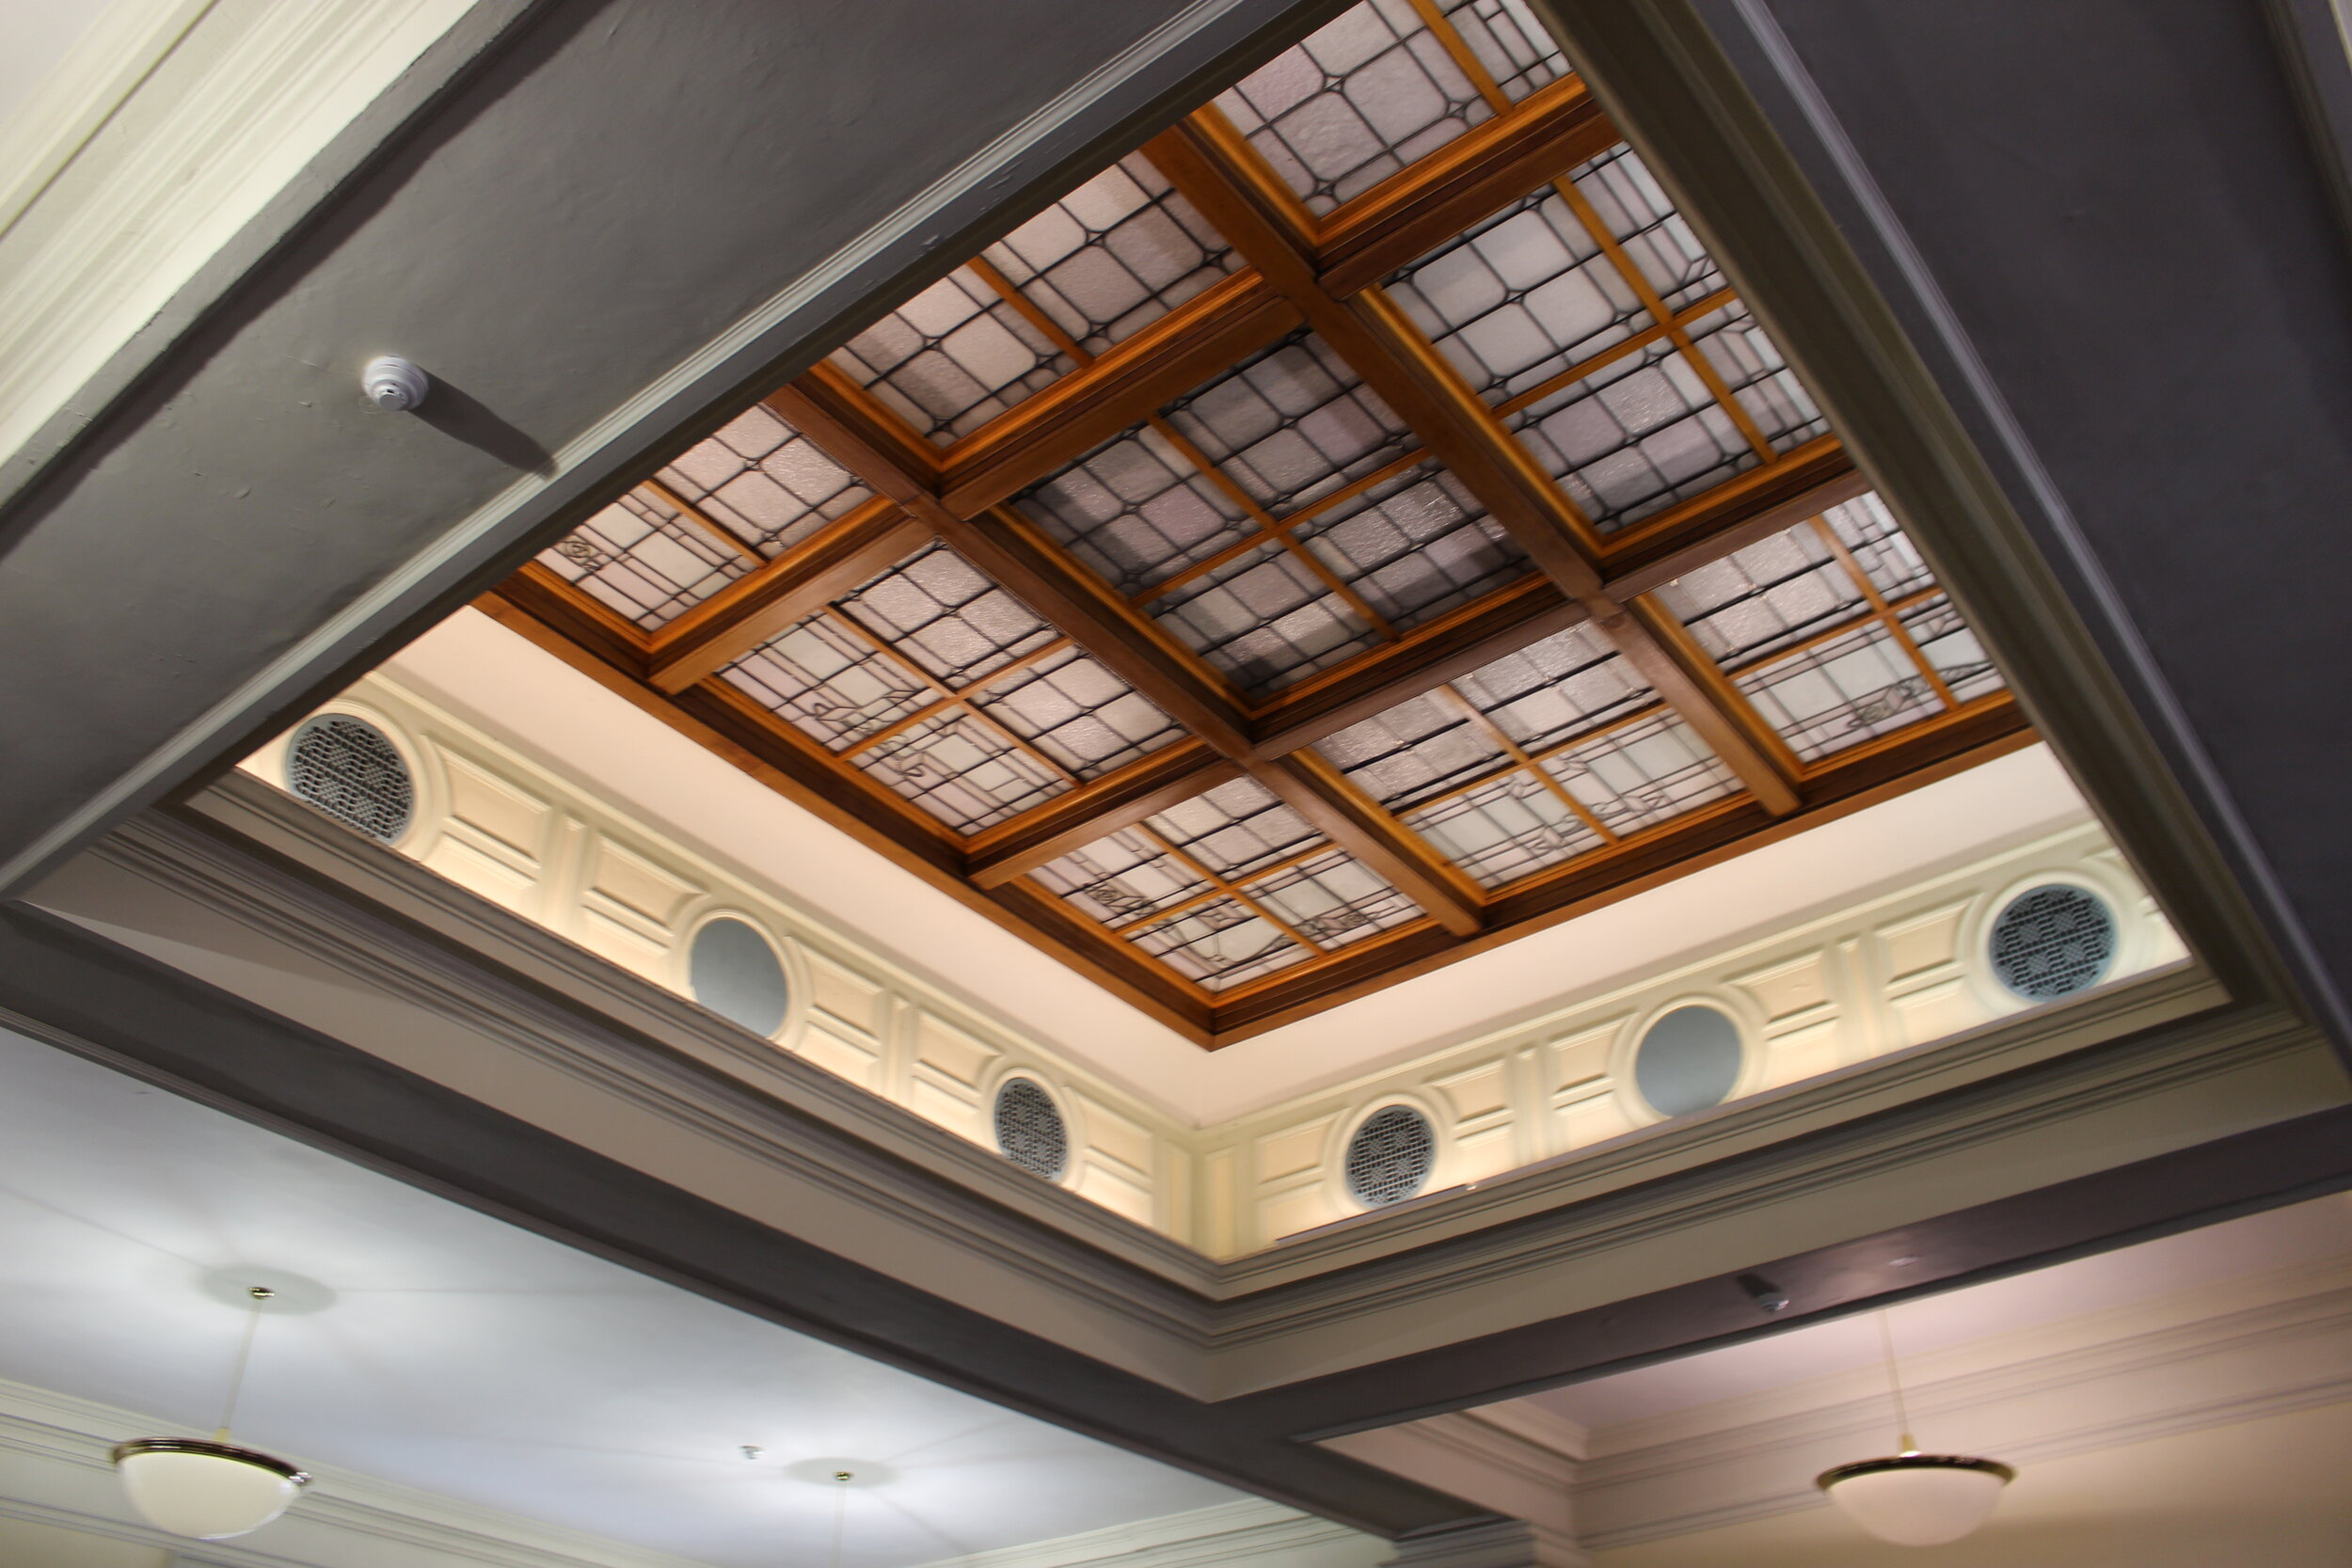 The original skylight had been covered in a mid-century renovation, but it would be opened to the sky in the renovation.